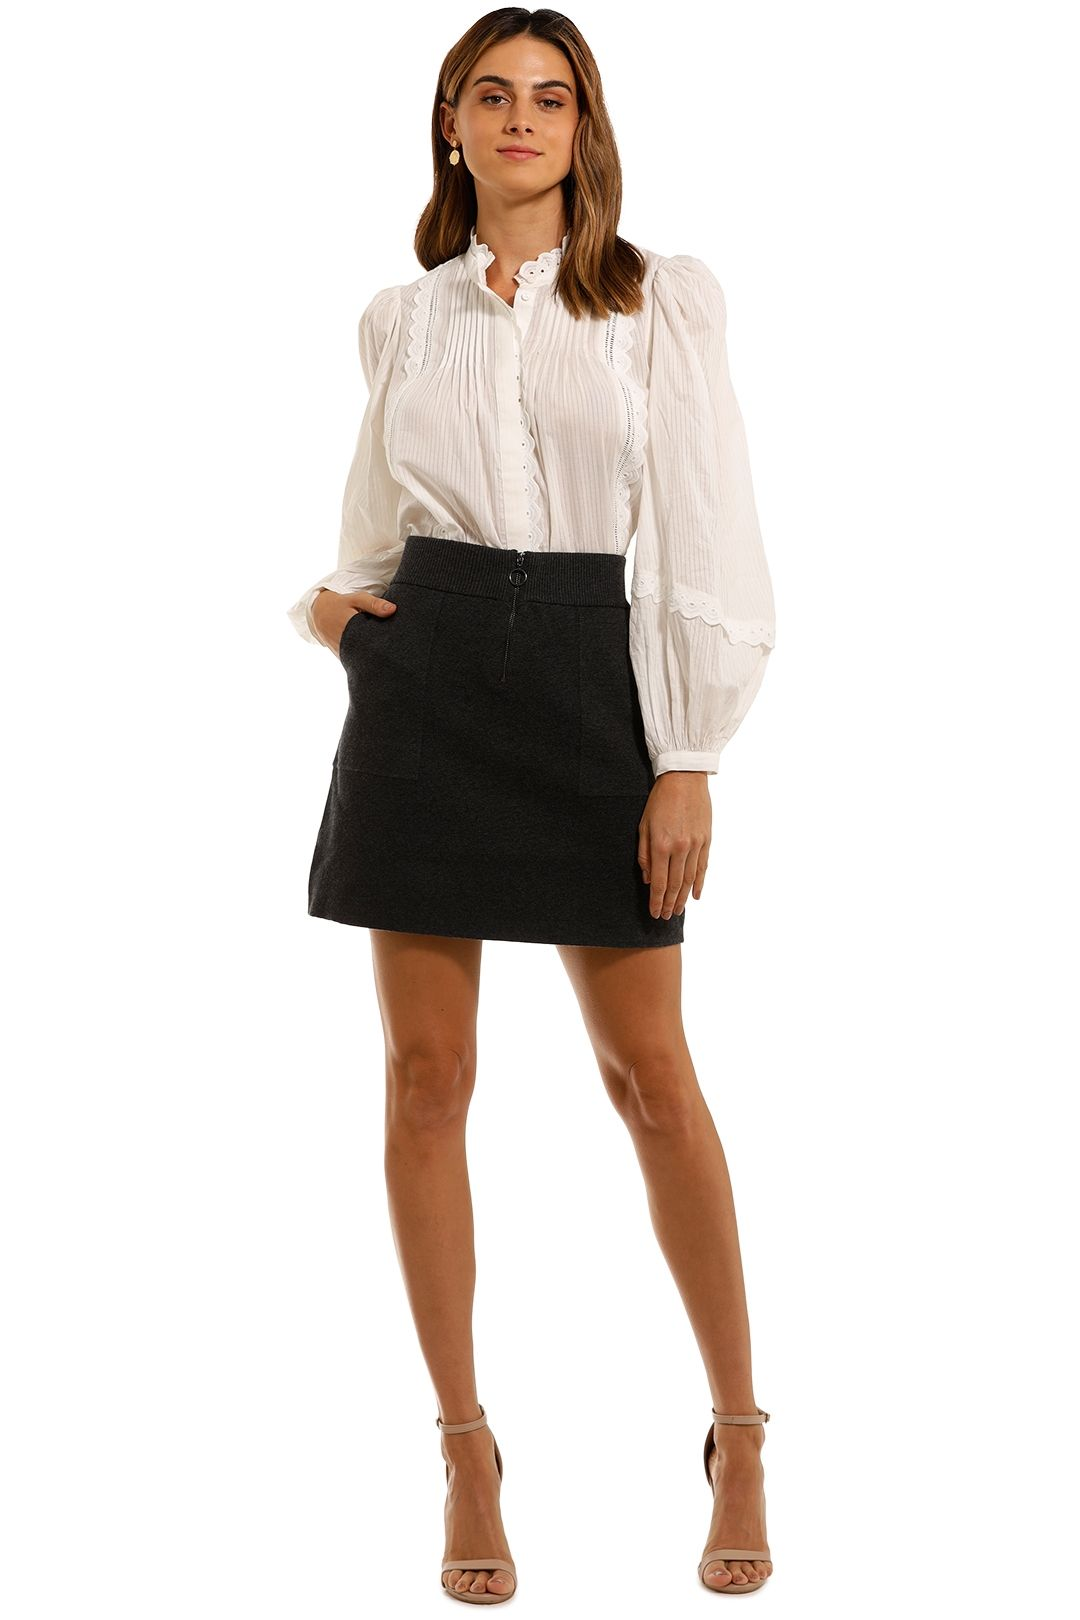 Witchery Zip Knit Skirt Charcoal Marle